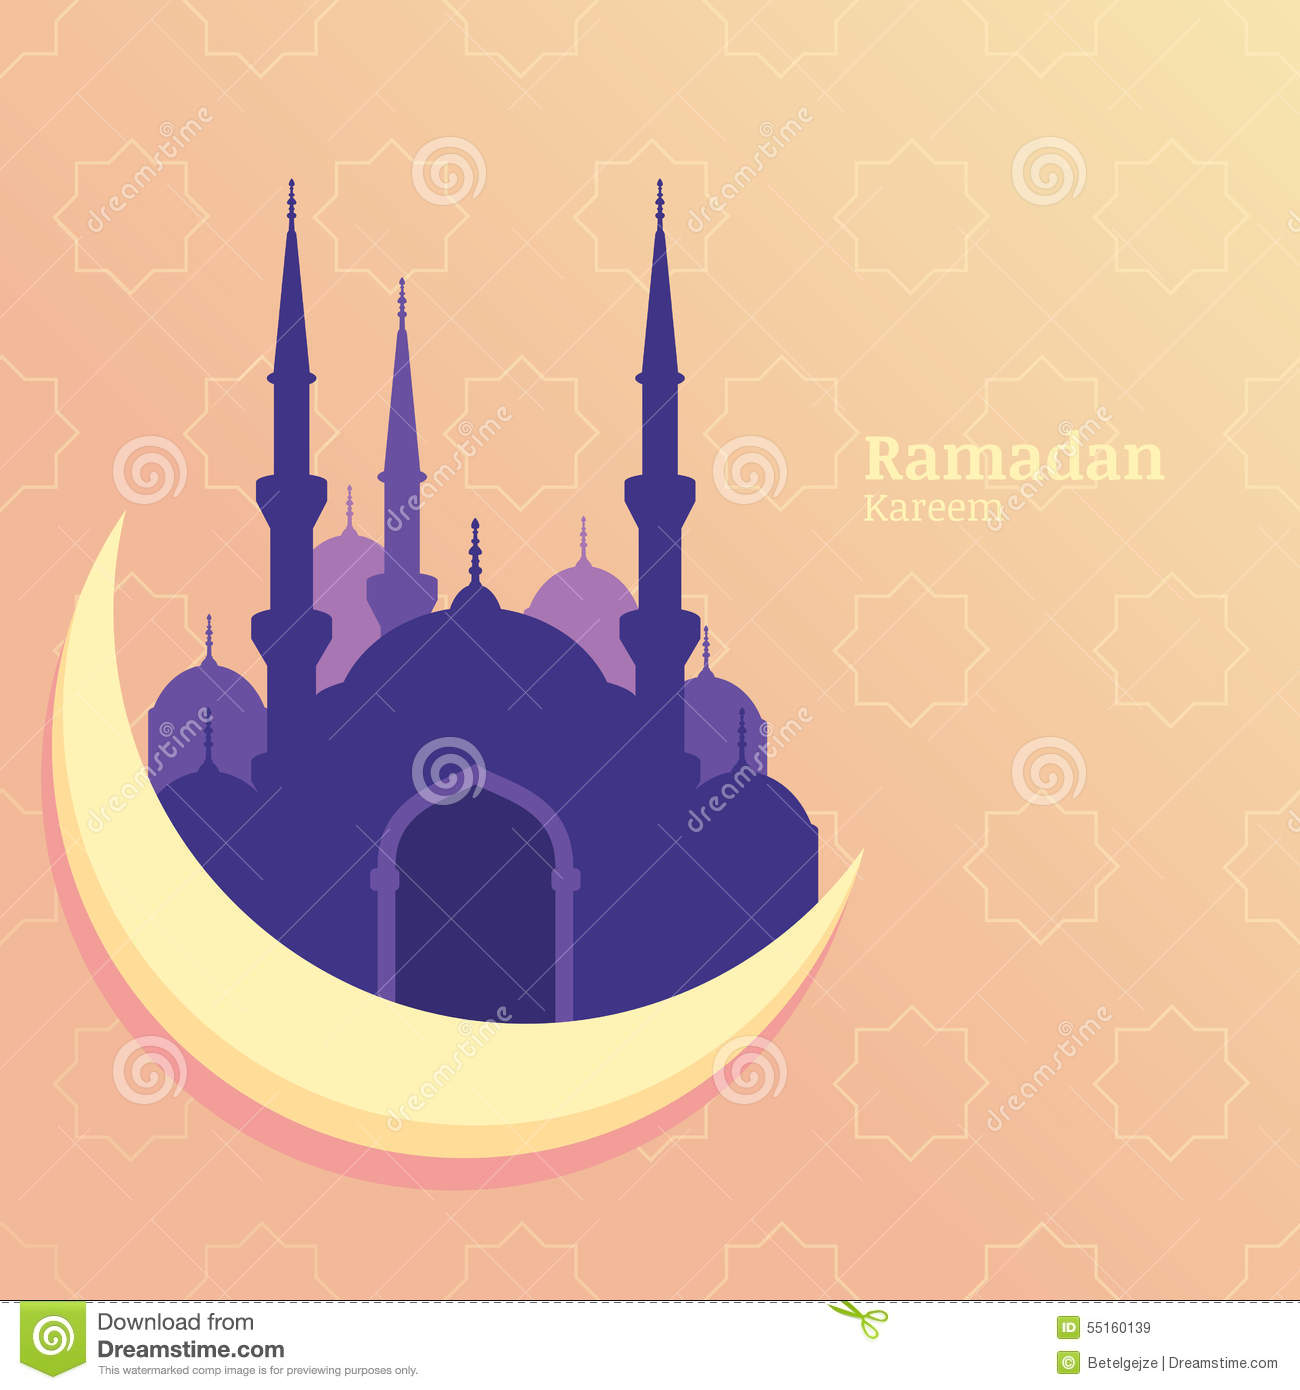 Mosque background for ramadan kareem stock photography image - Ramadan Kareem Vector Greeting Card Silhouette Of Purple Mosque Royalty Free Stock Images